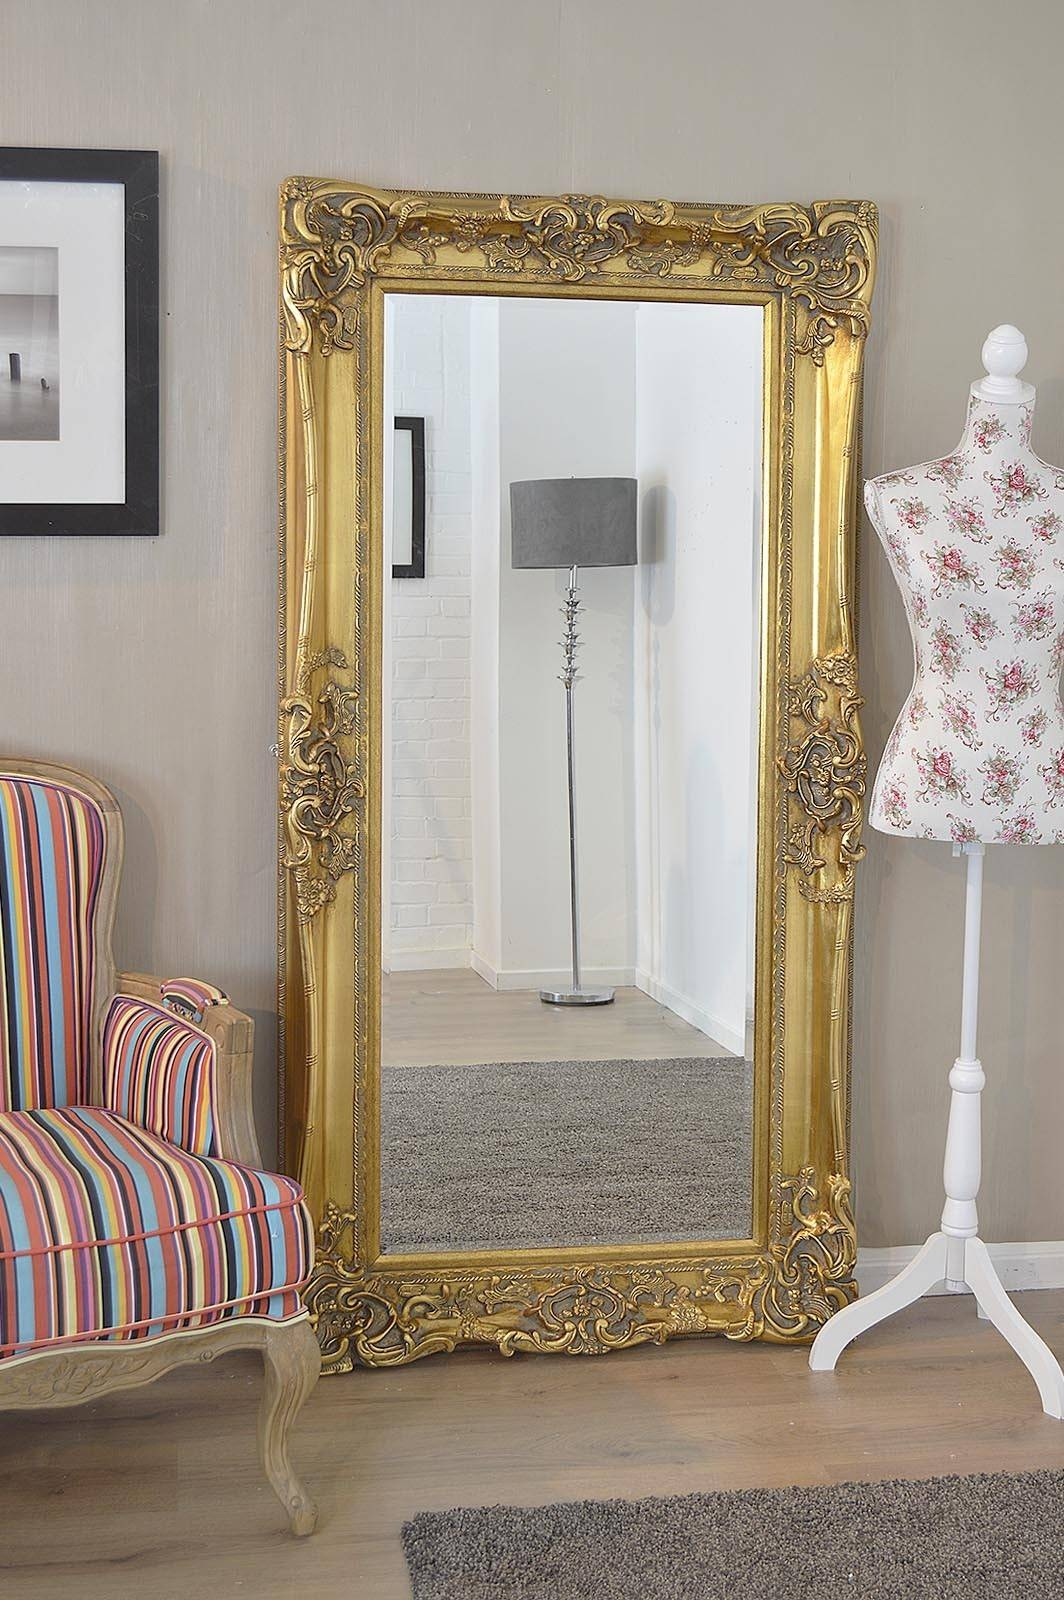 Giant Mirrors For Sale 33 Beautiful Decoration Also Large Wall regarding Large Antique Wall Mirrors (Image 13 of 25)